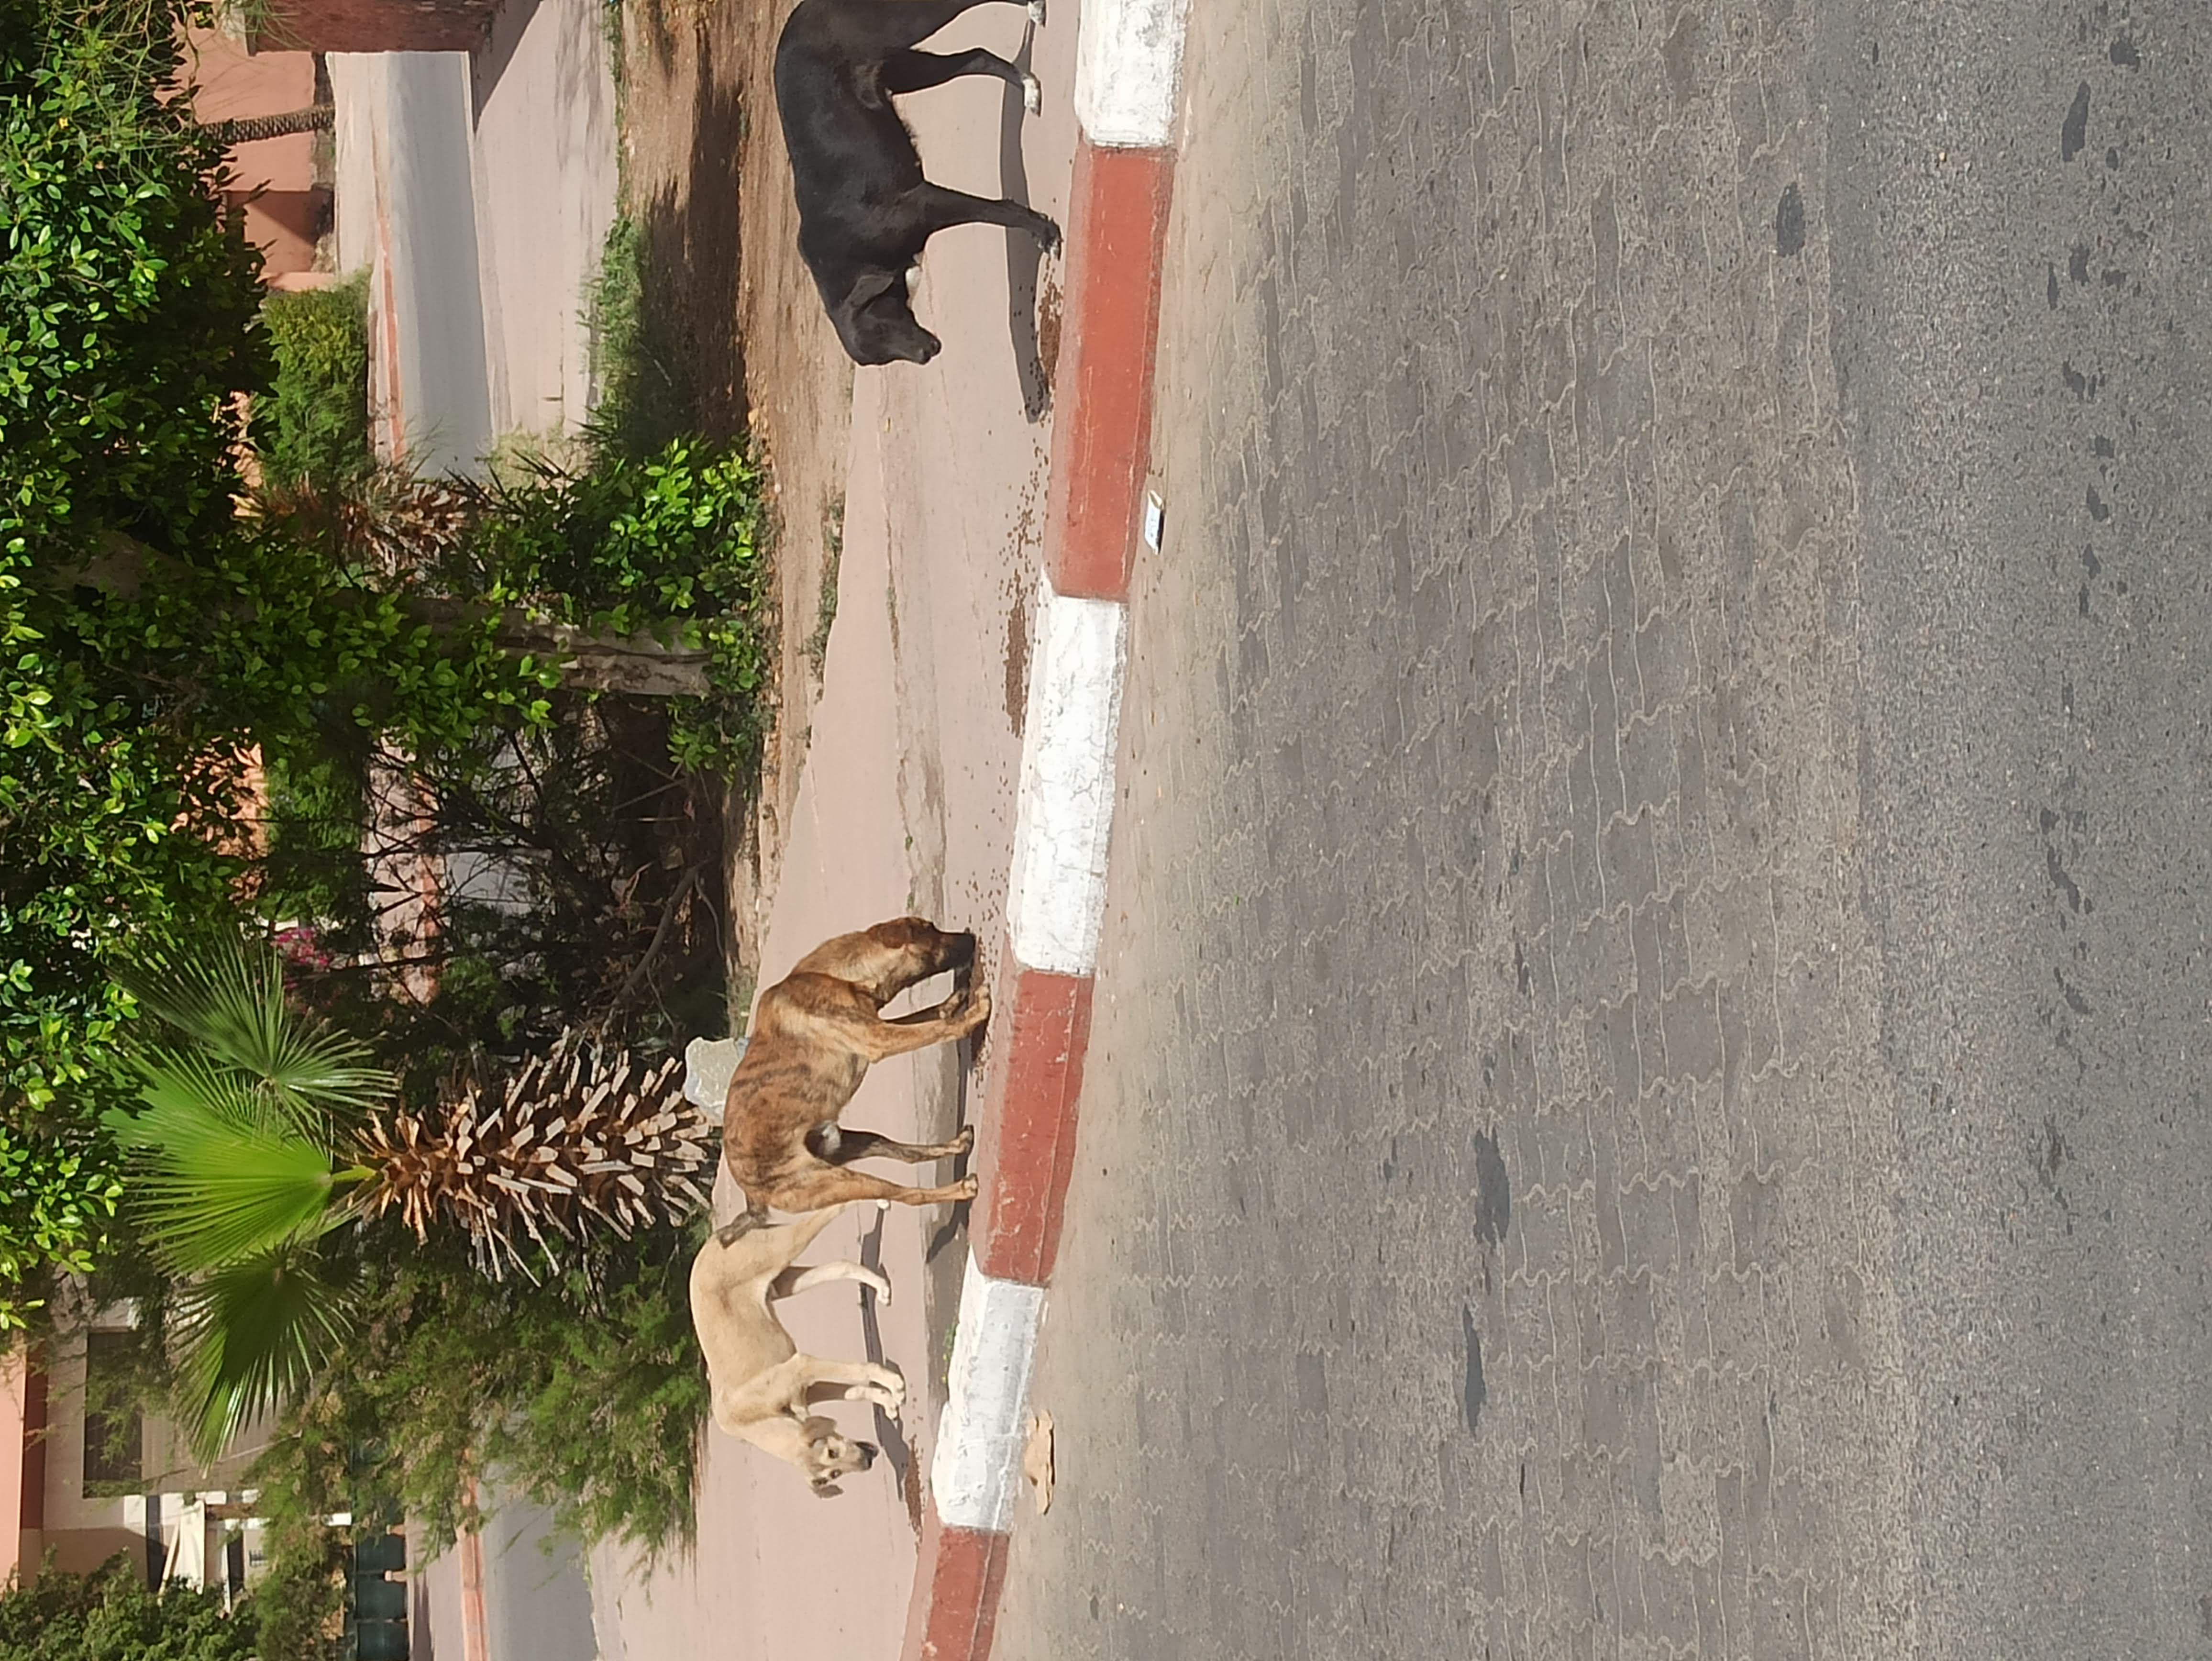 Adoption chien Marrakech